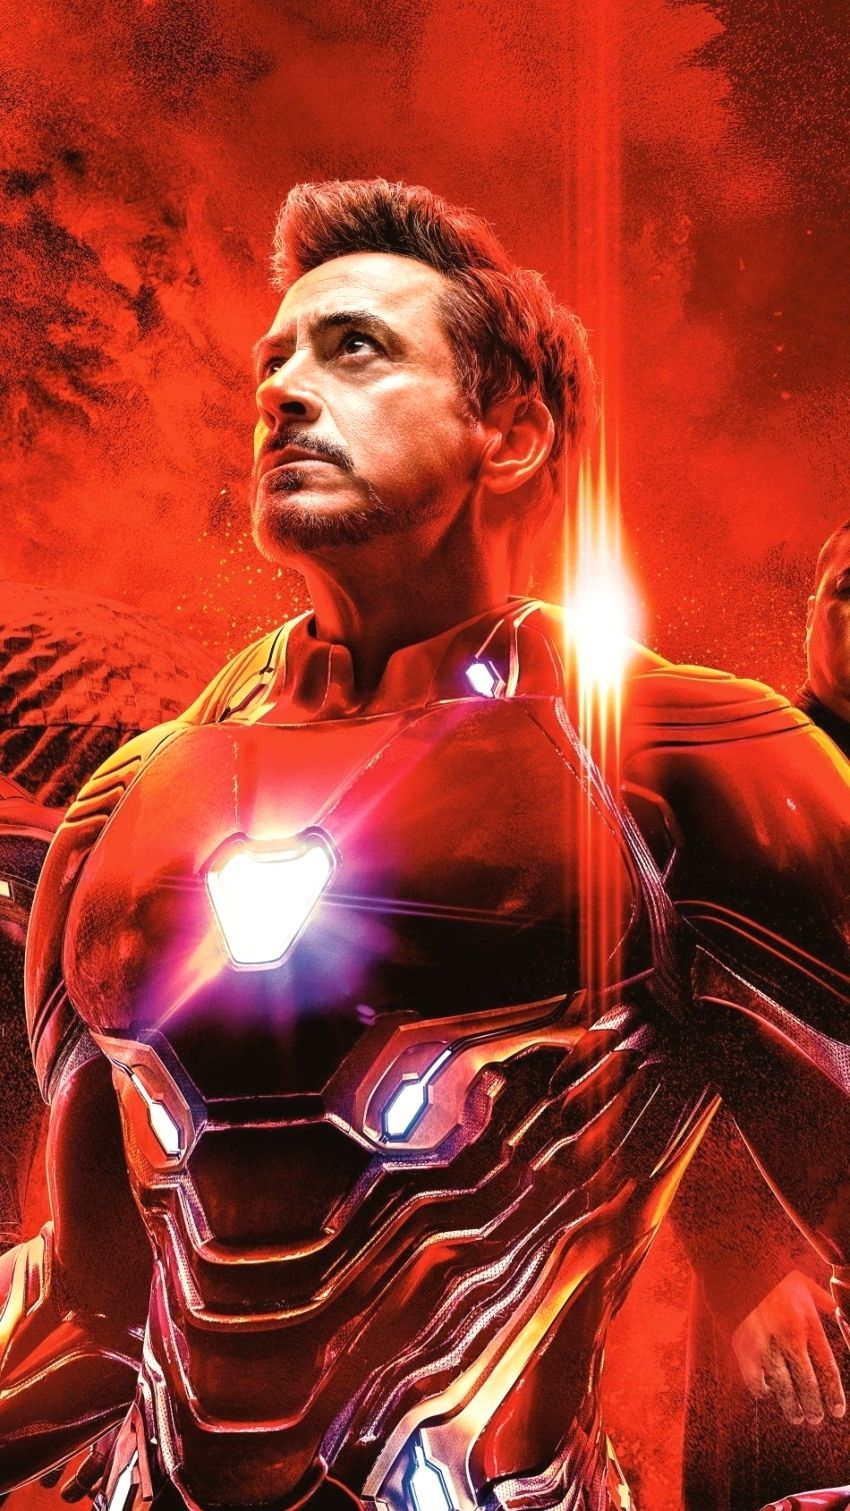 Iron Man In Avengers Endgame 4k Ultra Hd Mobile Wallpaper Endgame Wallpaper Iron Man Endgame 850x1511 Wallpaper Teahub Io